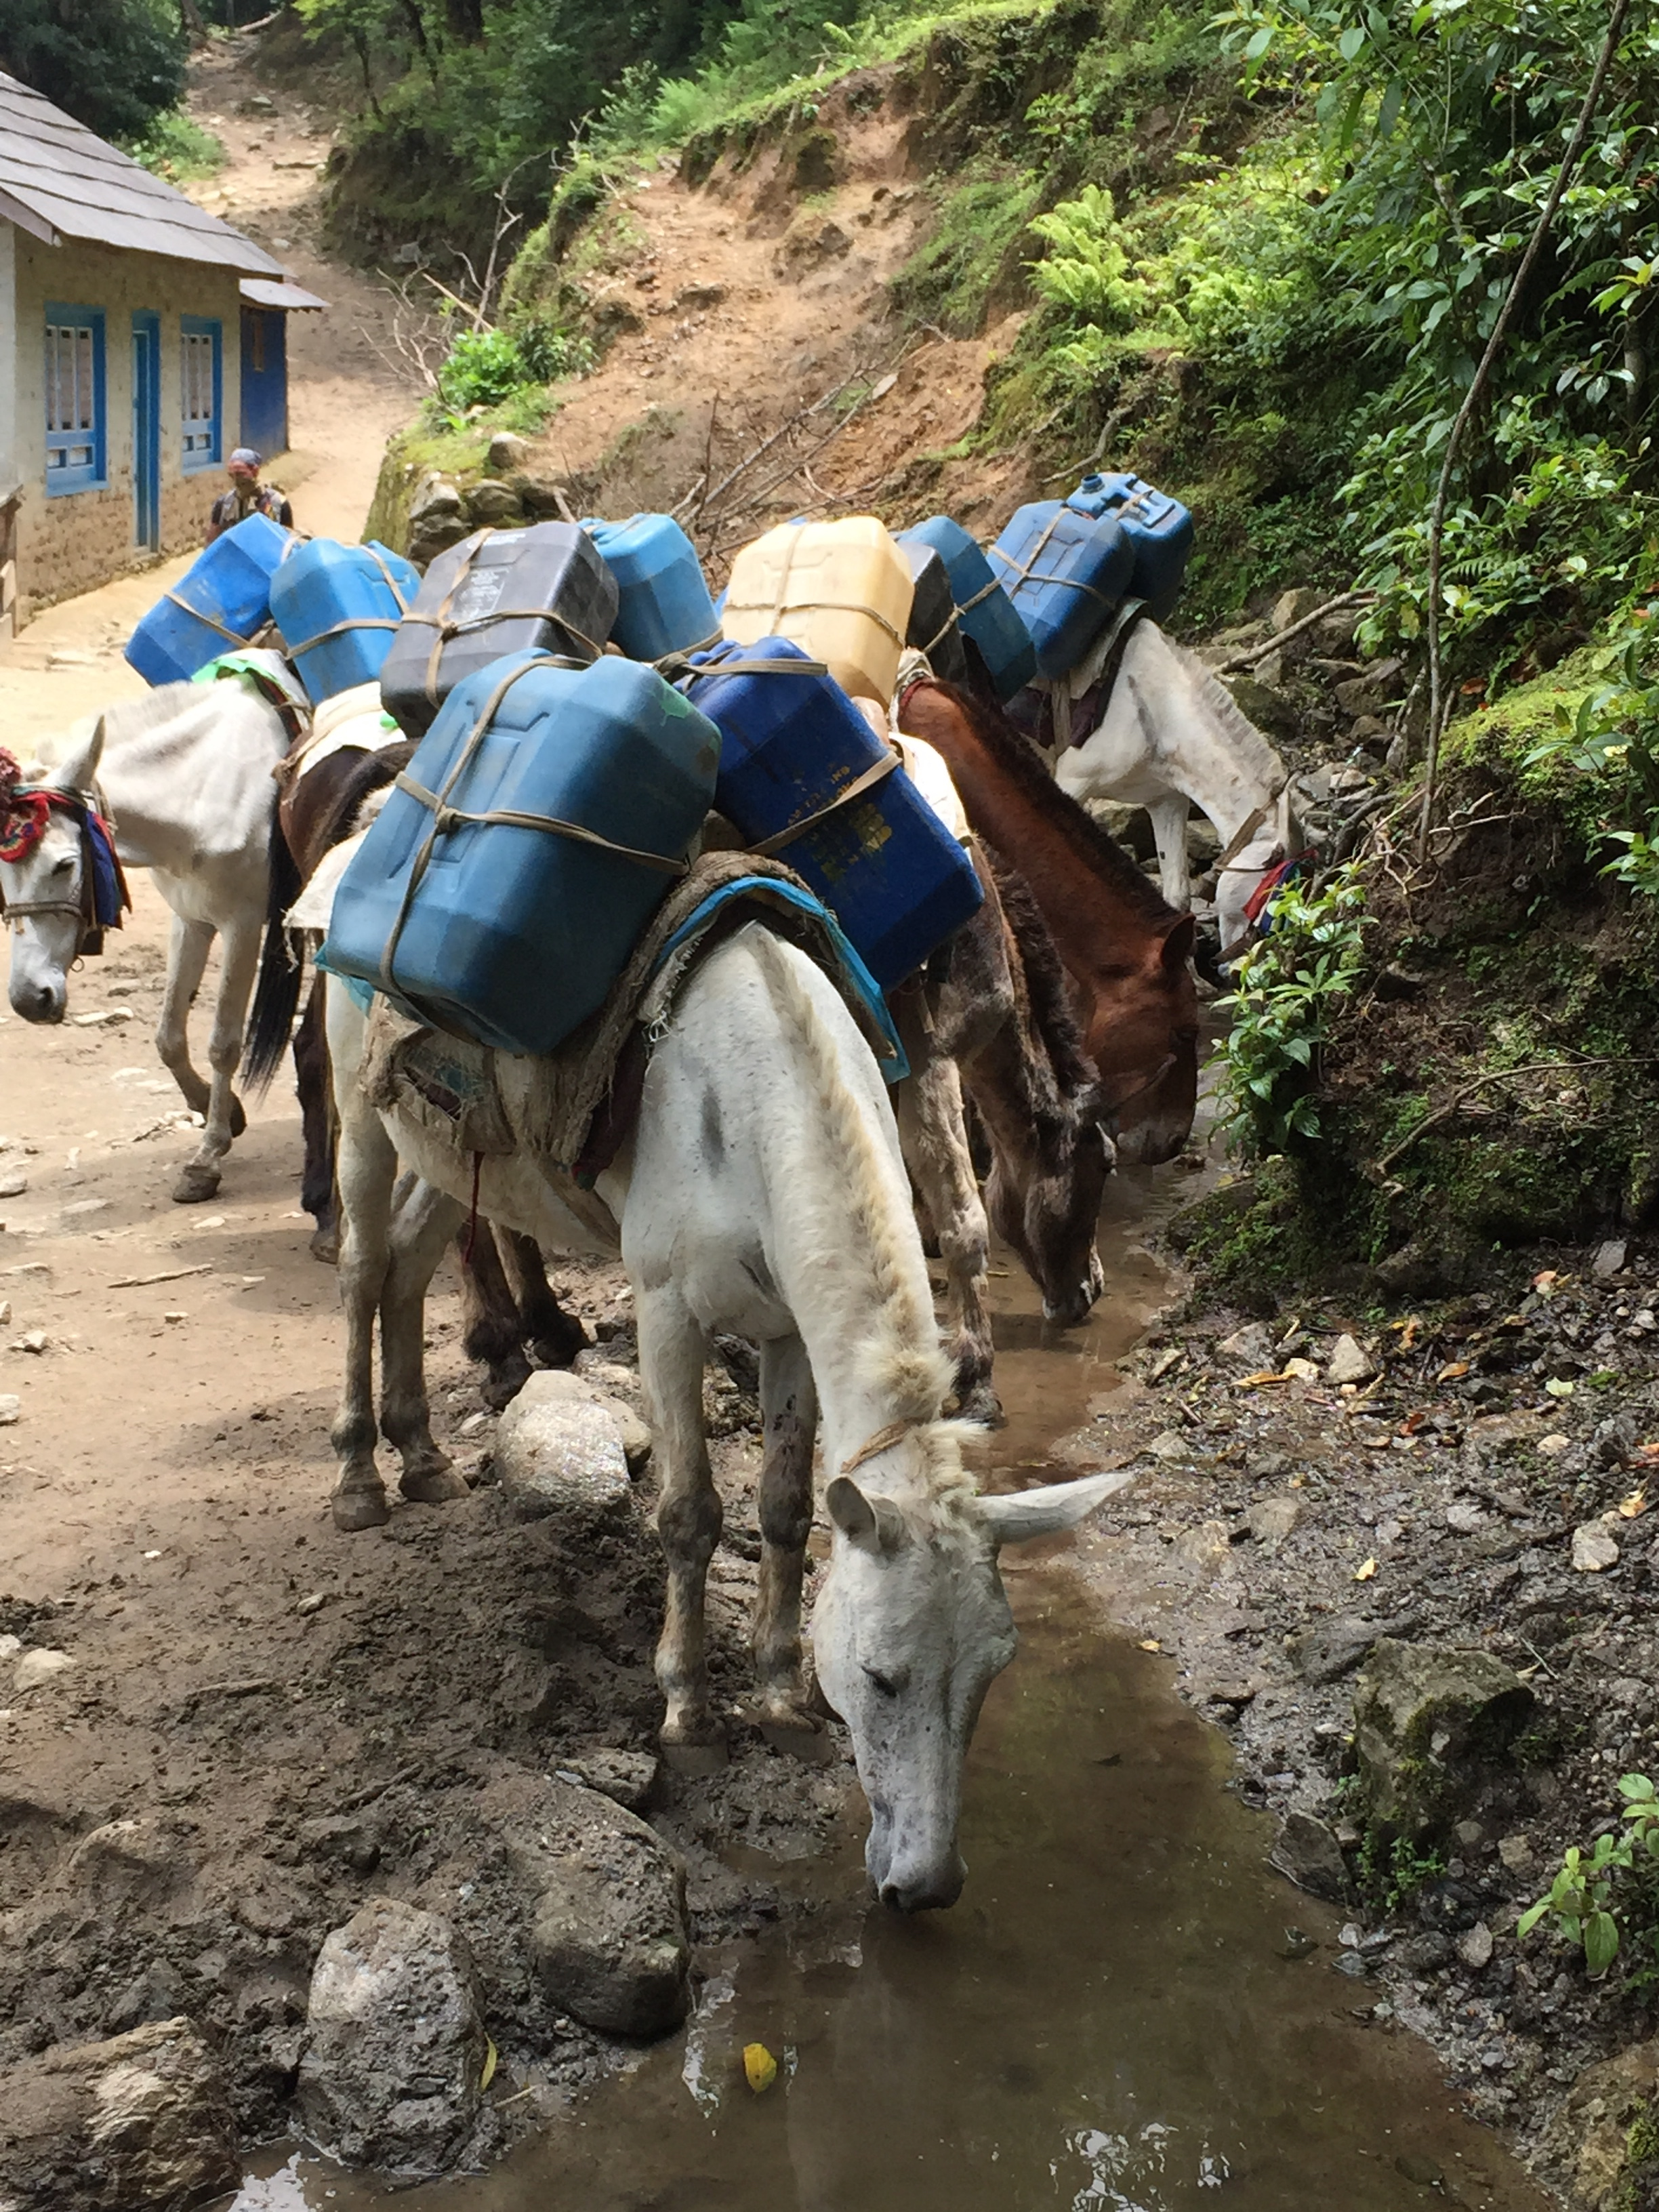 Further up the mountain, most goods are delivered by porter or mule train.